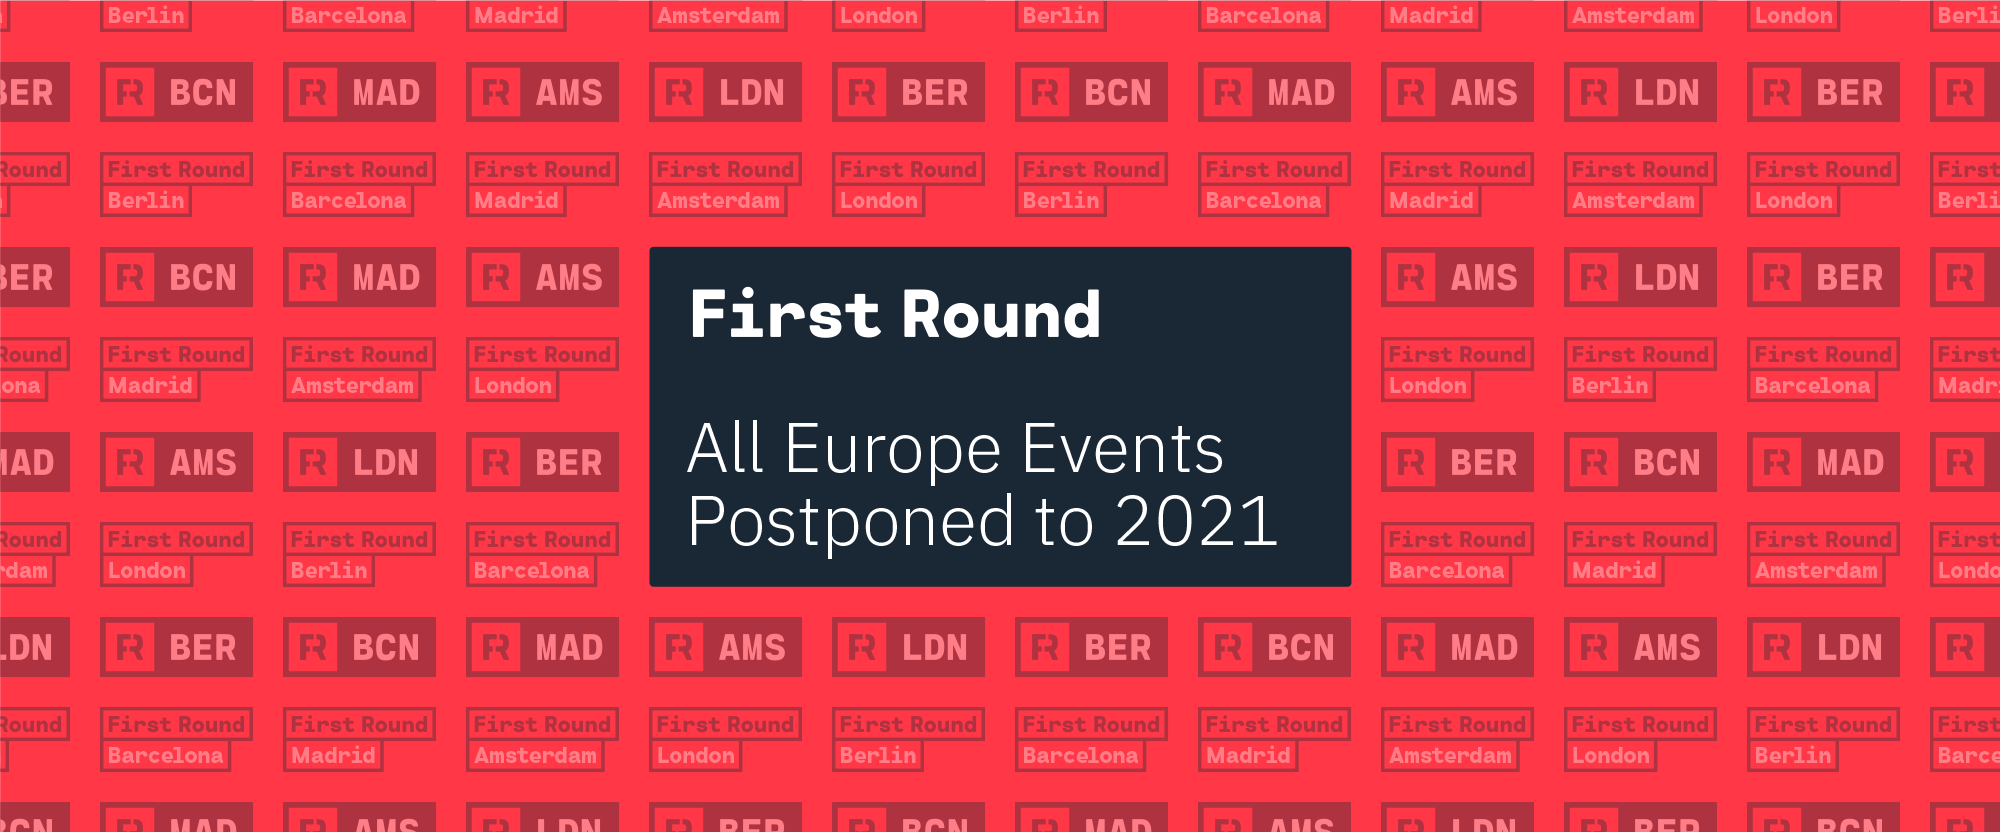 First Round 2020: Europe Events Postponed